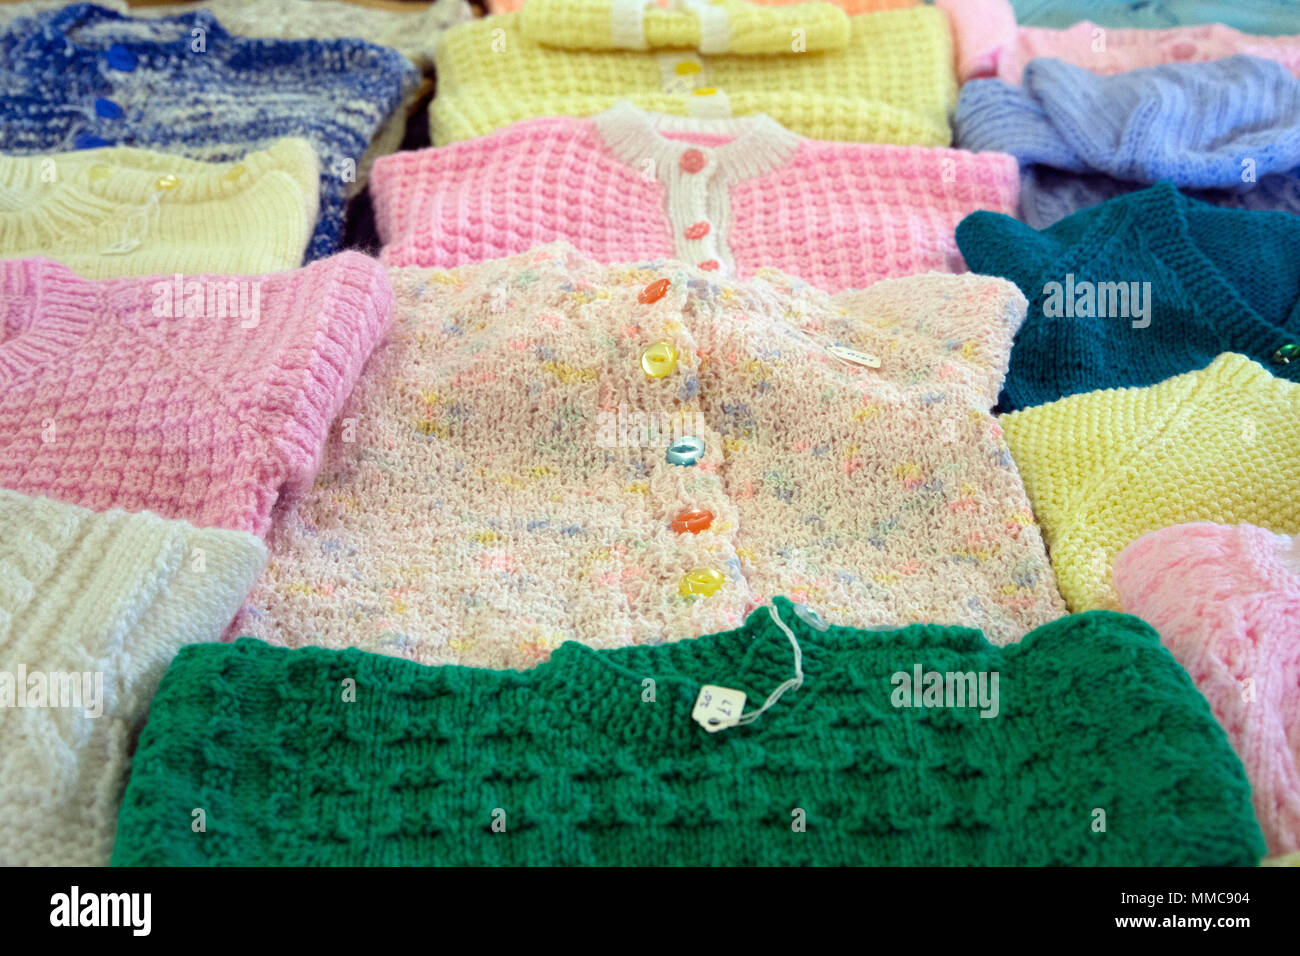 pristine new hand-knitted hand-made woollen cardigans and jumpers on sale in an english church hall fundraising for good causes for the parish council - Stock Image